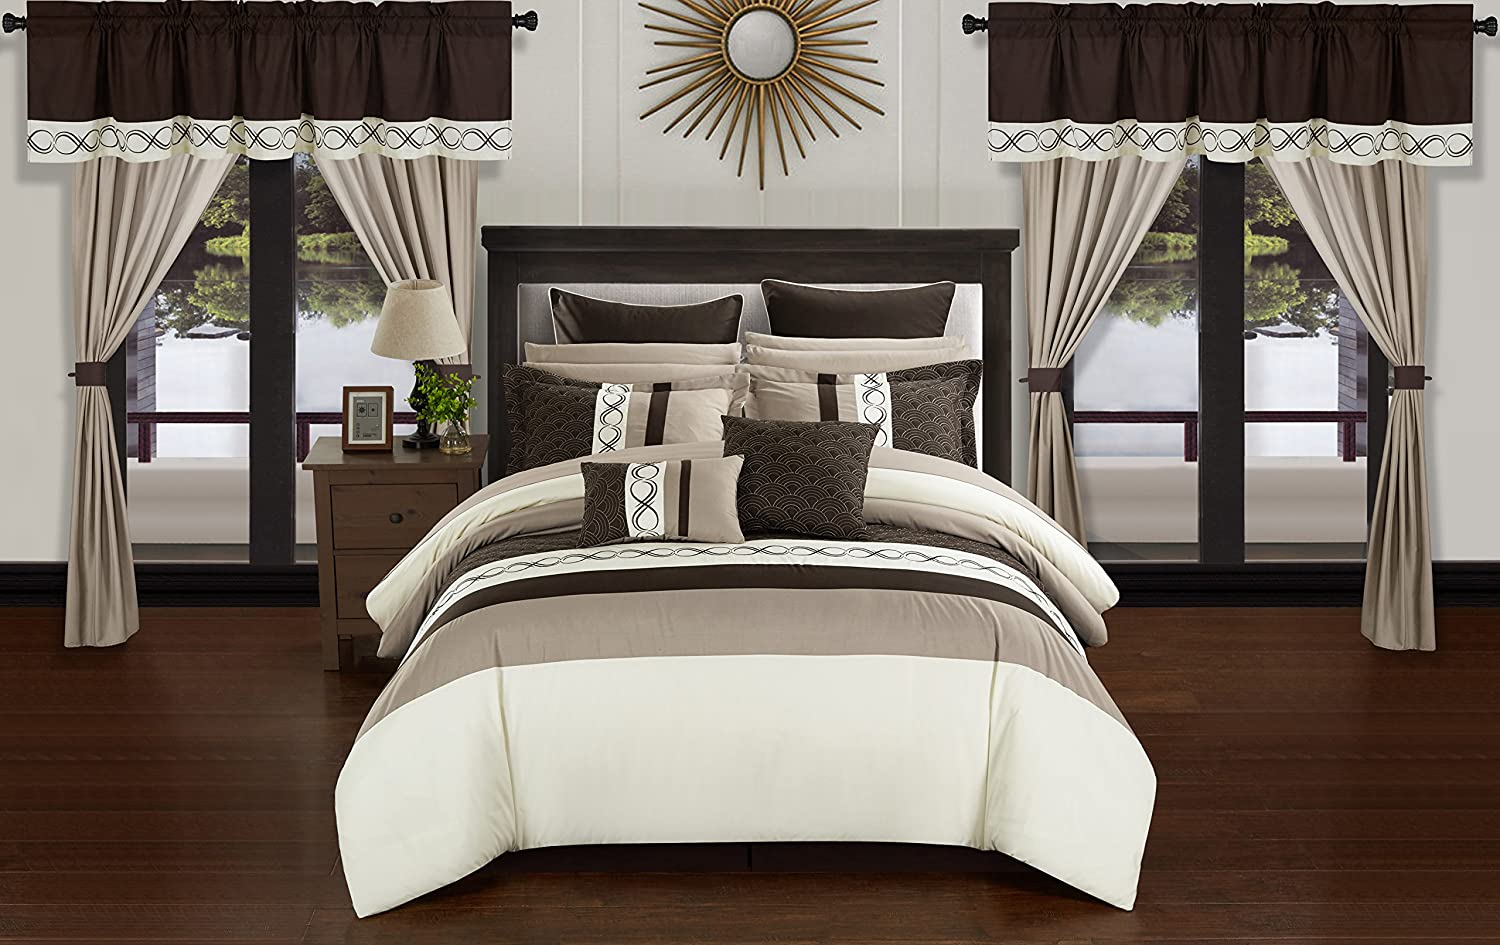 Chic Home Idit 24 Piece Comforter Set Color Block Embroidered Design Complete Bag Bedding, King, Beige